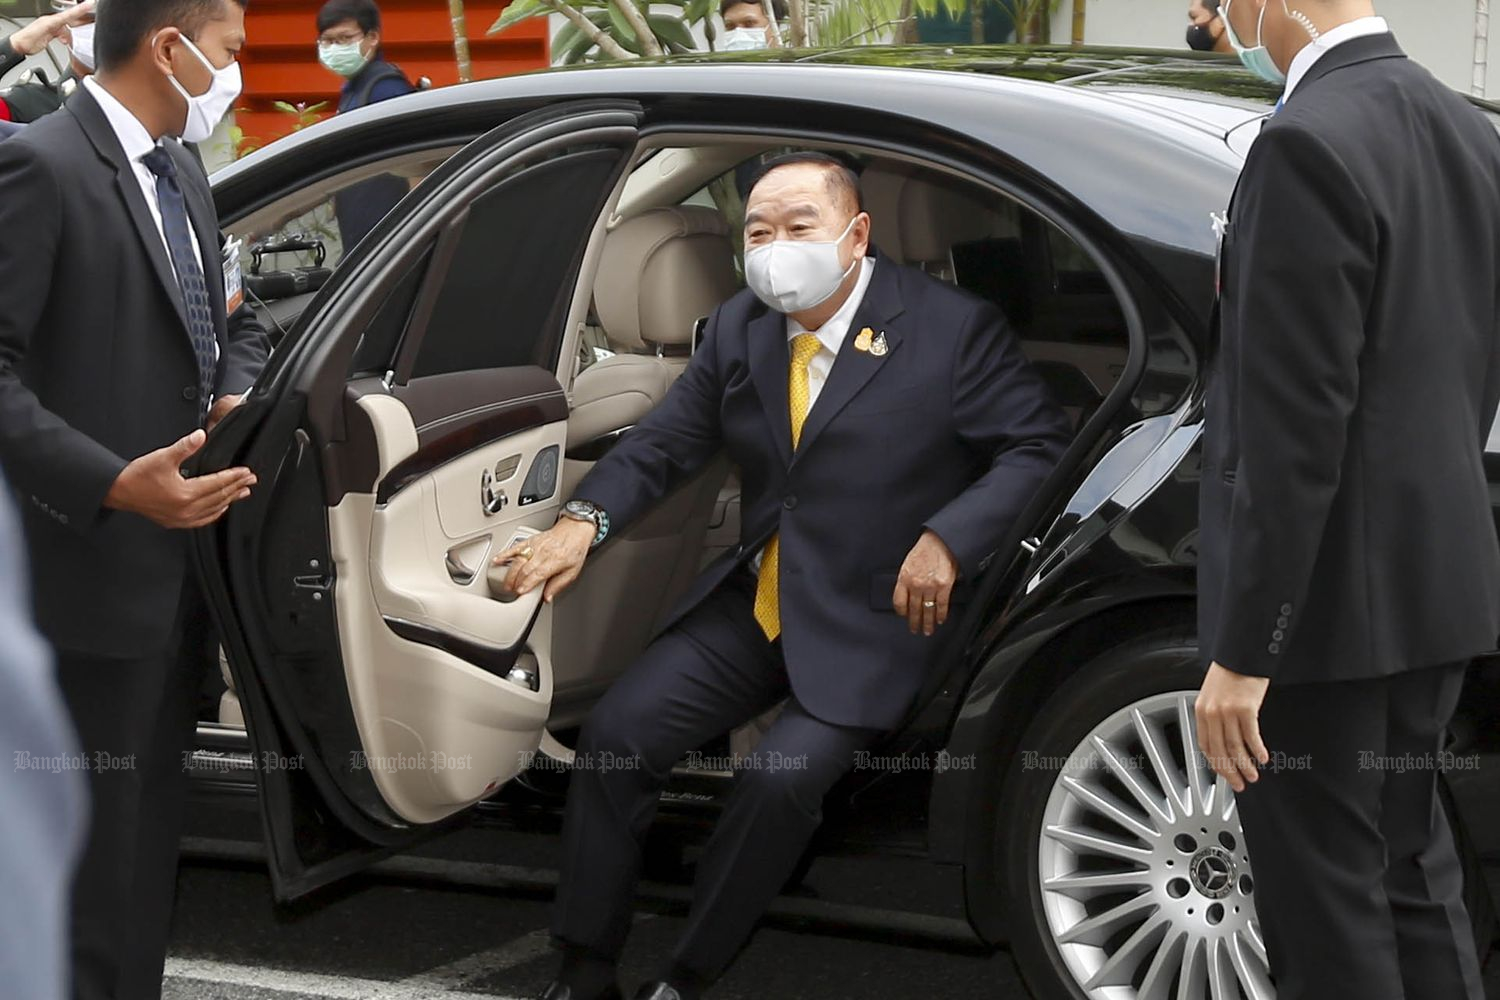 Deputy Prime Minister Prawit Wongsuwon gets out of a car after arriving at a dormitory of state-owned CAT Telecom Plc, where health personnel of the Chulabhorn Royal Academy stay, on April 14. (Photo by Pattarapong Chatpattarasill)